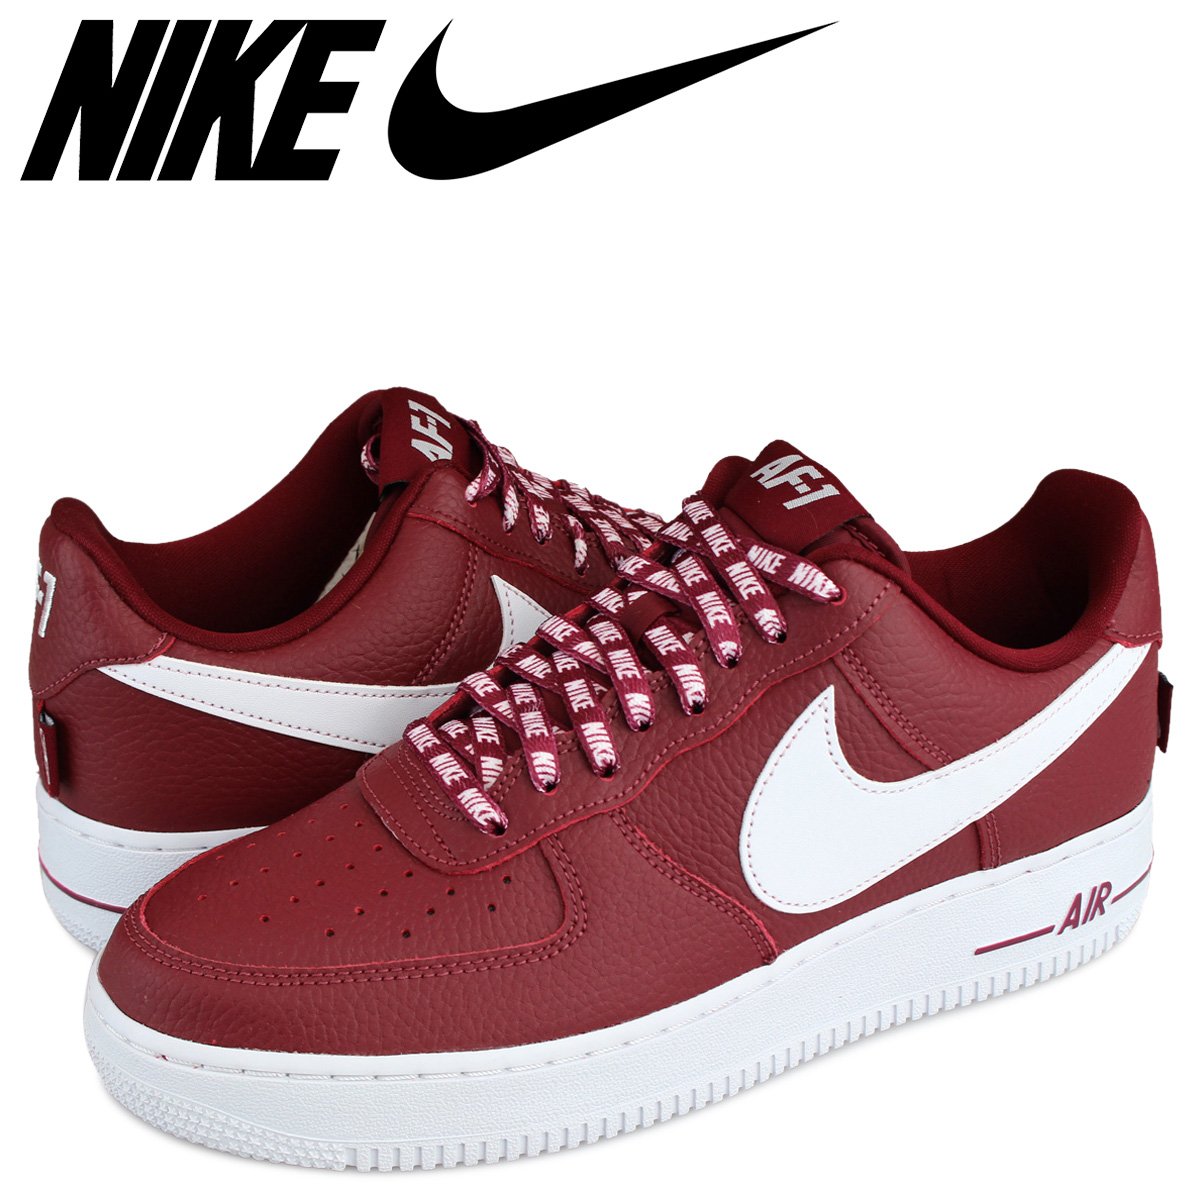 NIKE AIR FORCE 1 NBA Nike air force 1 07 LV8 sneakers 823,511 605 men's shoes red [load planned Shinnyu load in reservation product 111 containing]